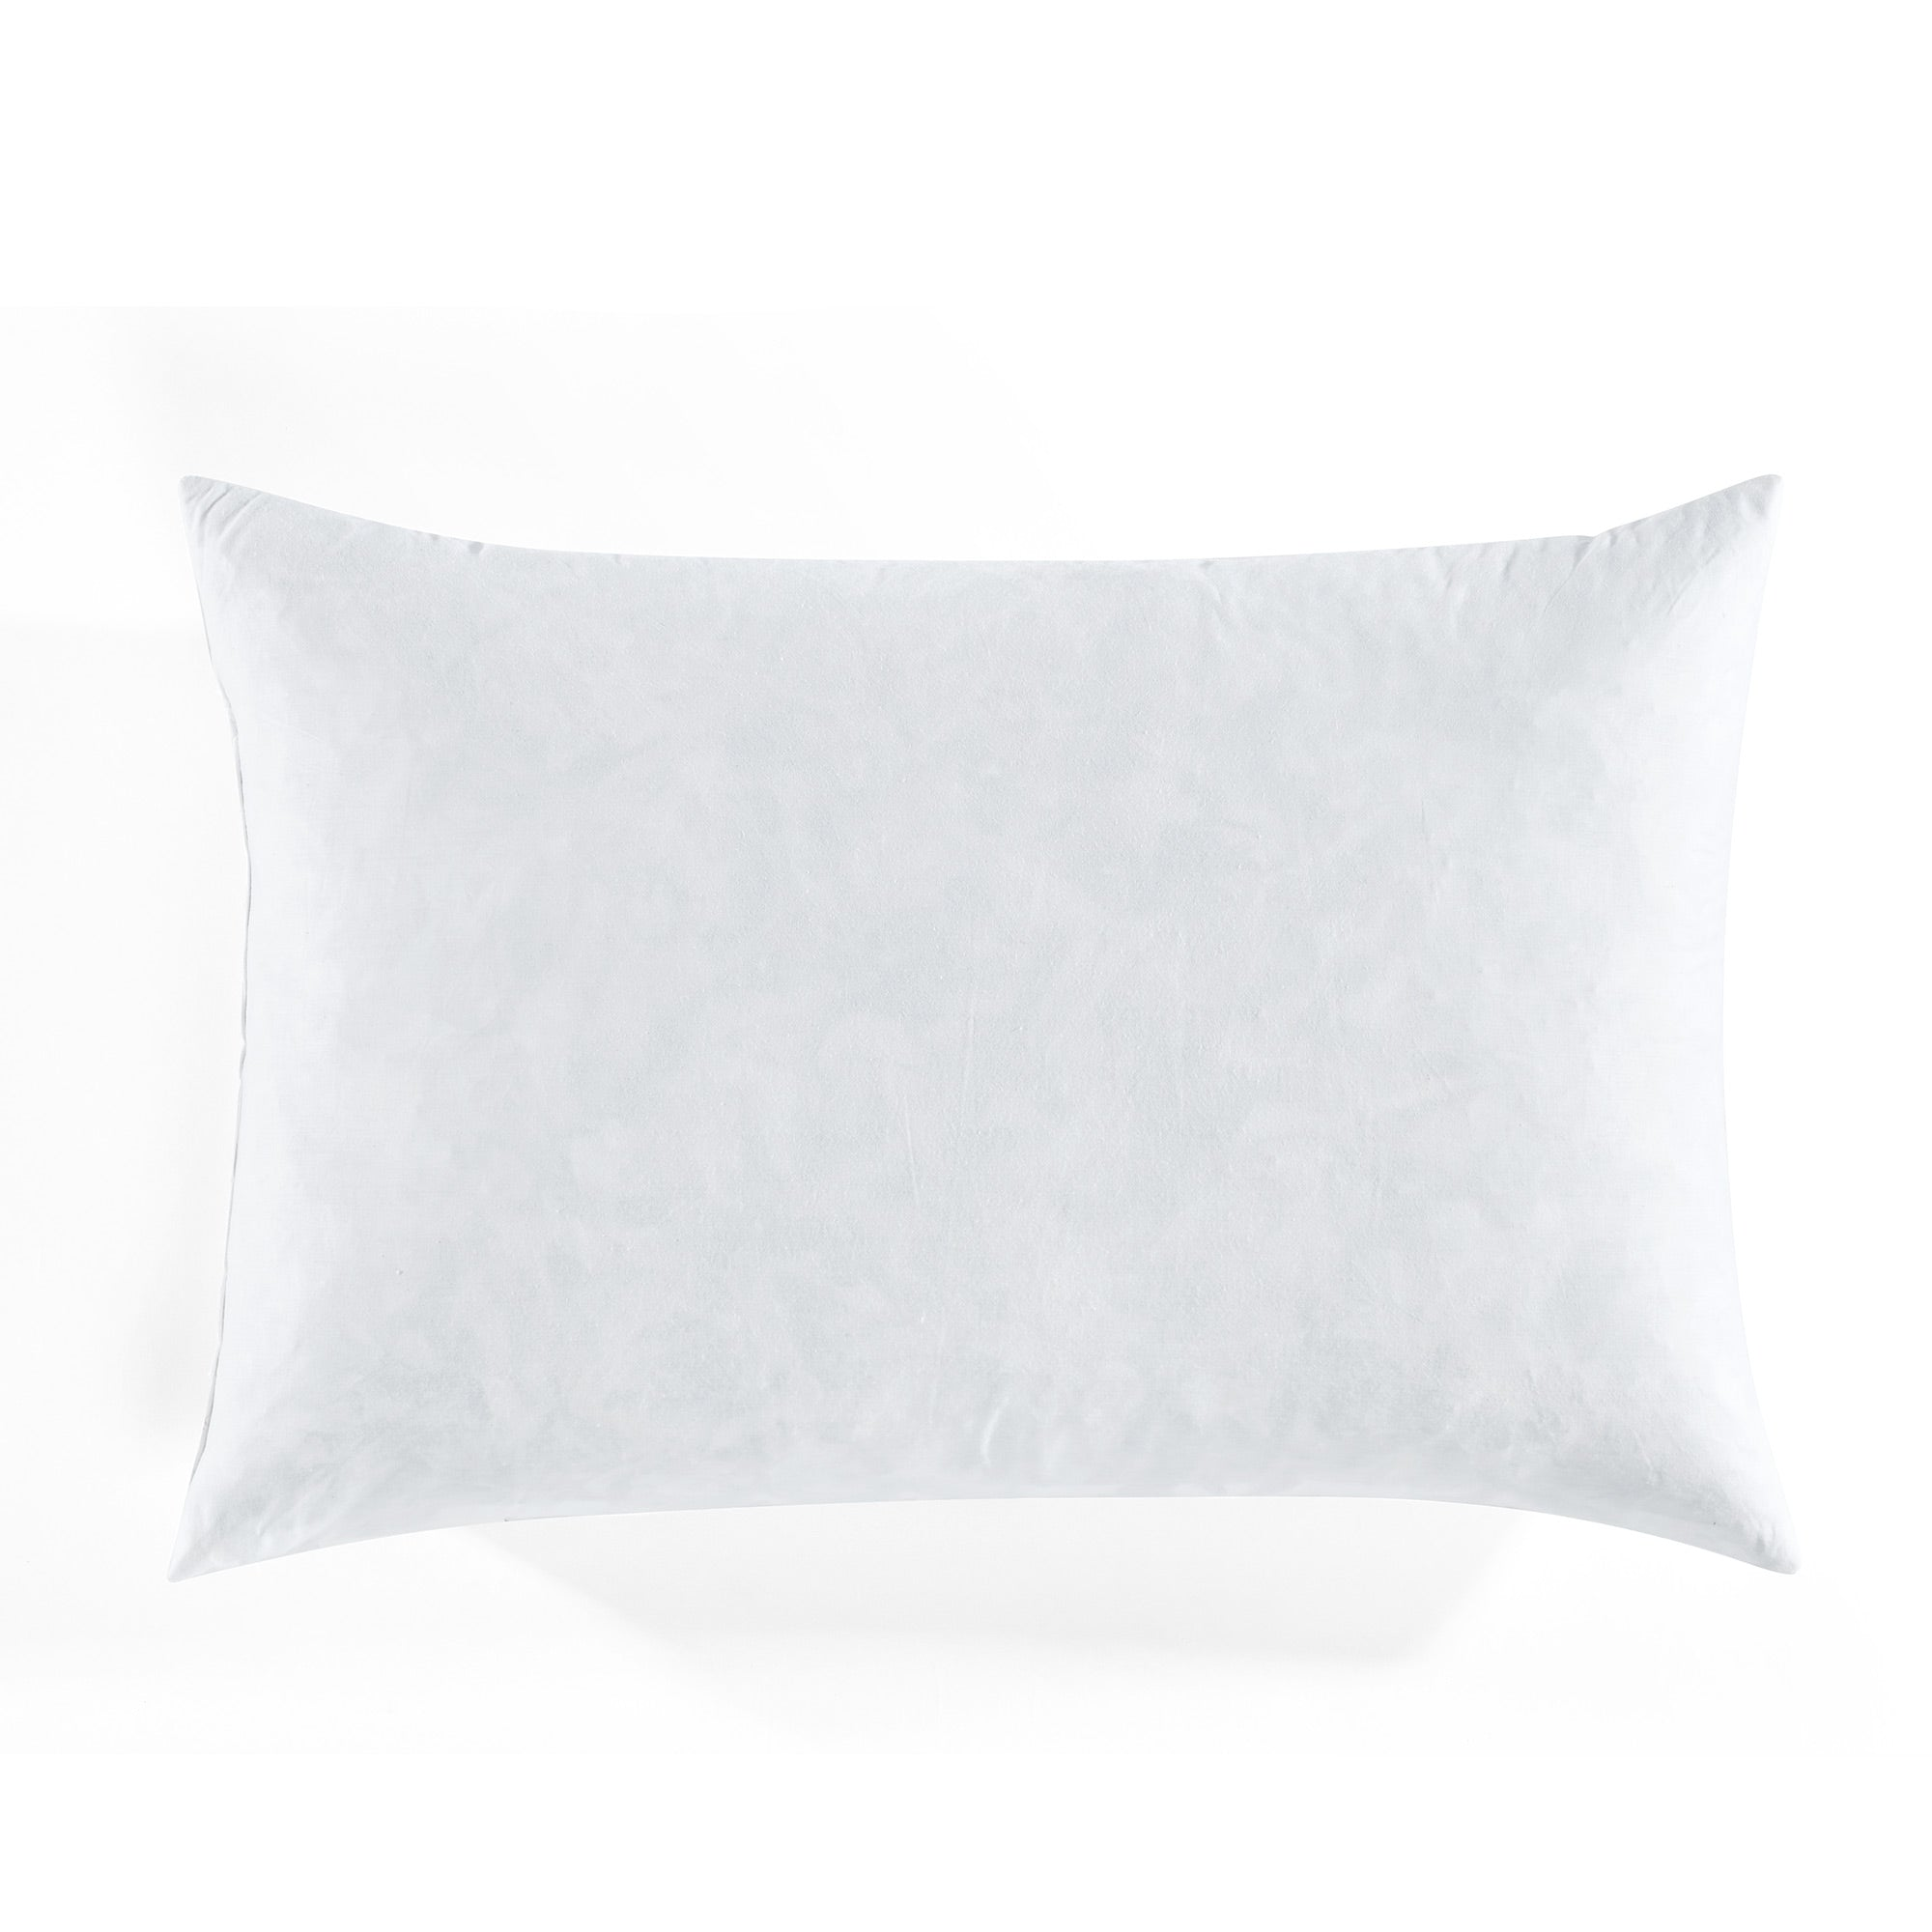 Feather Down in Cotton Cover Decorative Pillow Insert